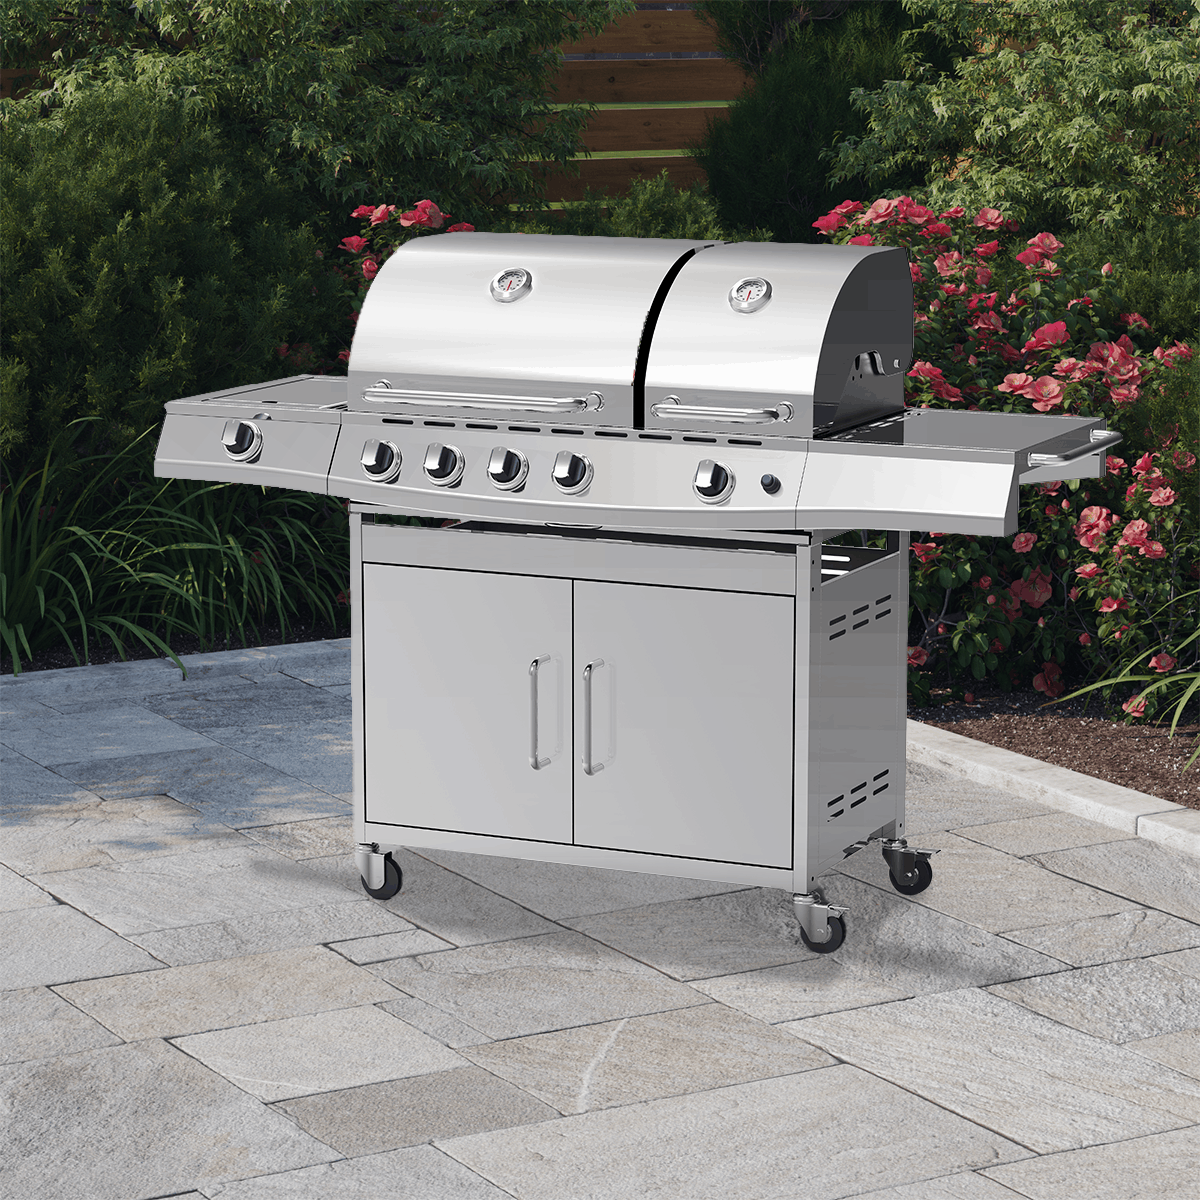 BillyOh Stainless Steel Dallas 5 burner Gas BBQ on patio